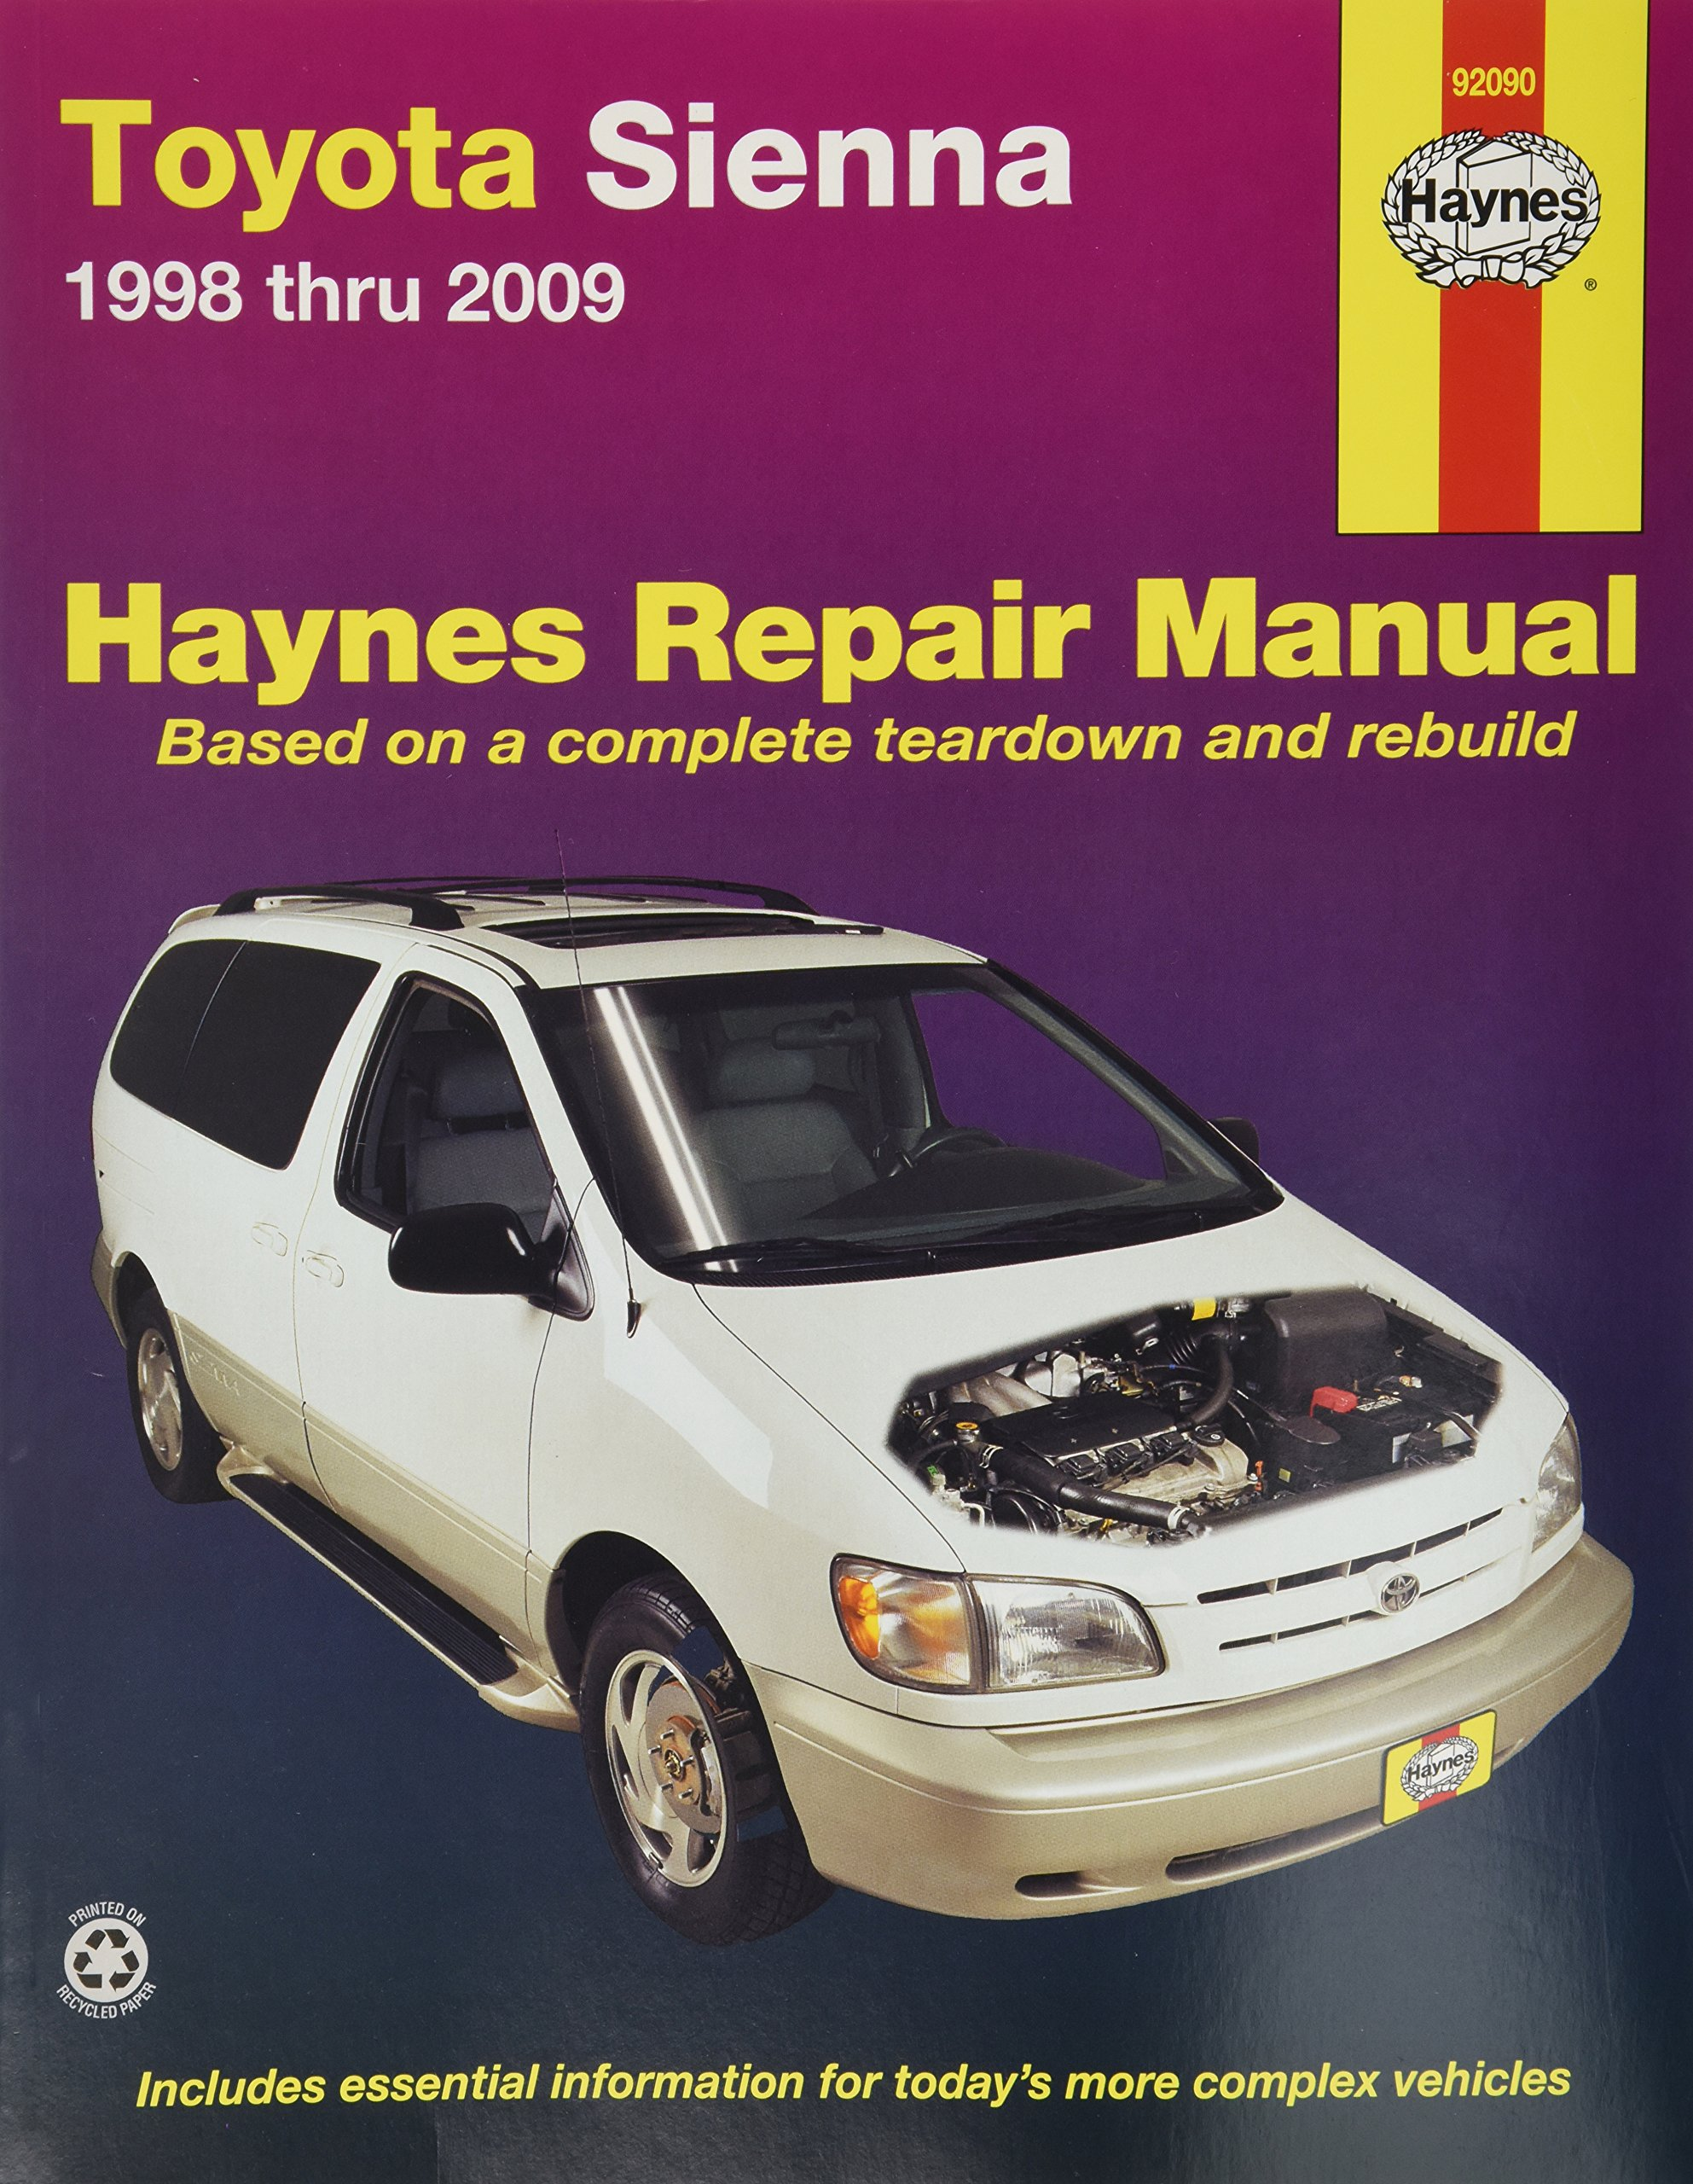 Amazon com haynes repair manual for toyota sienna 1998 thru 2009 number 92090 0038345920905 books